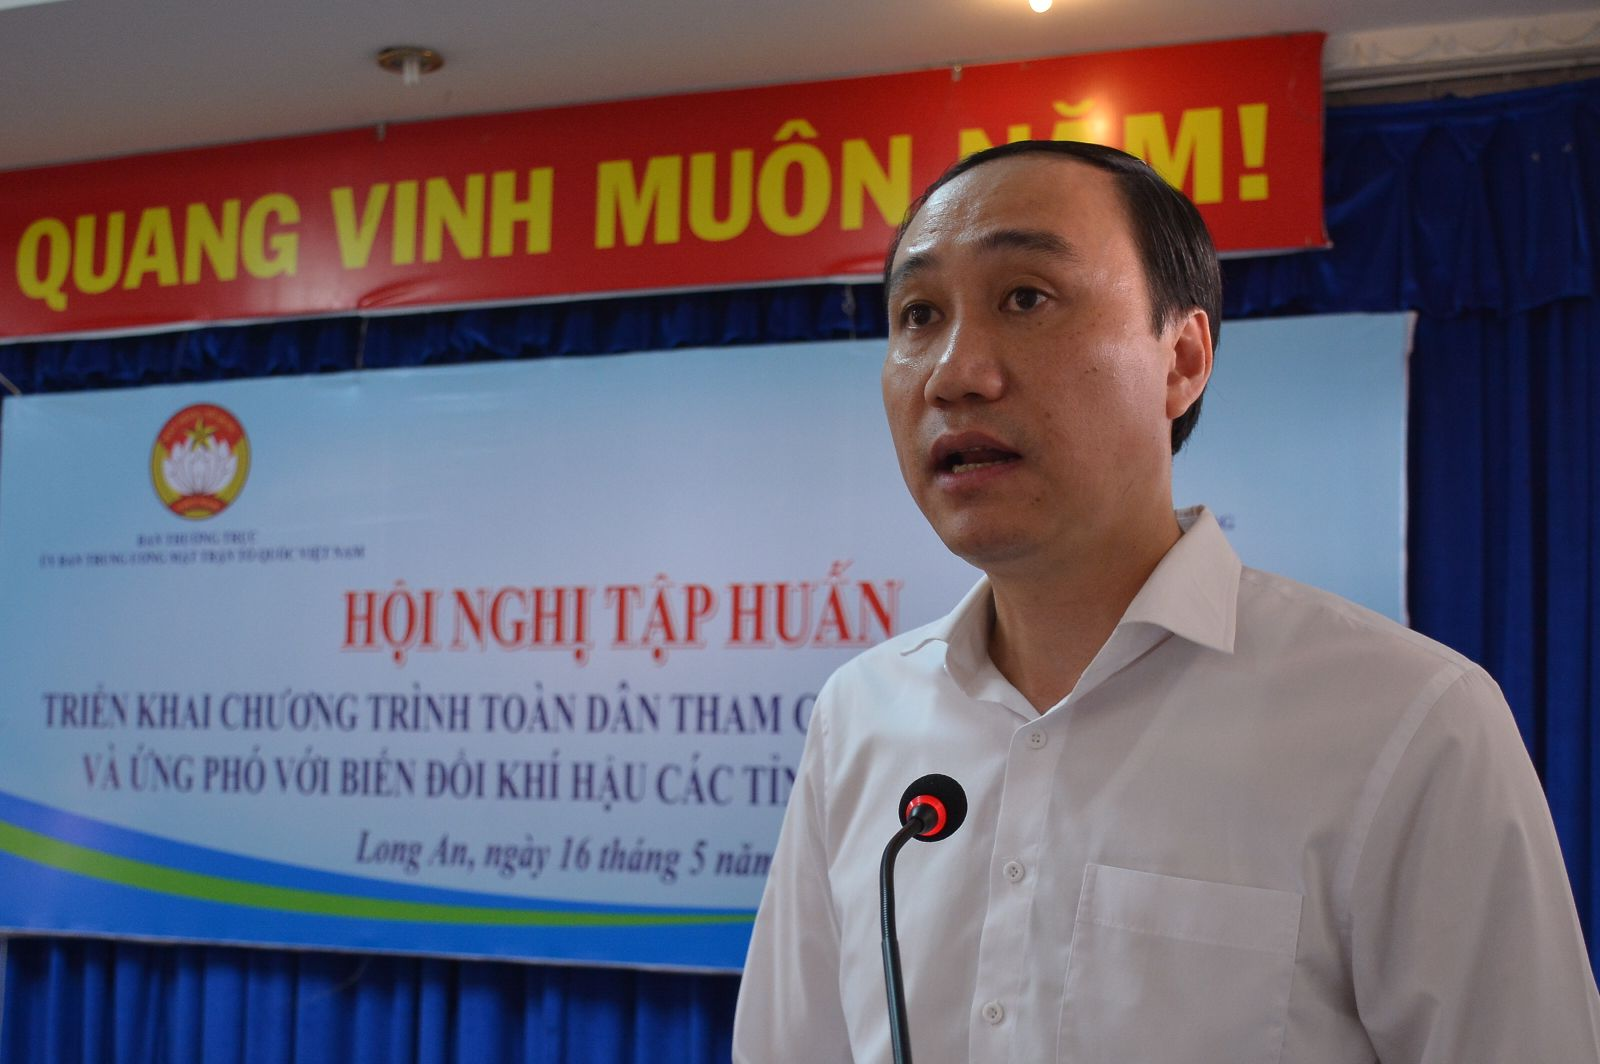 Vice Chairman of the Vietnam Central Fatherland Front Committee - Phung Khanh Tai spoke at the conference